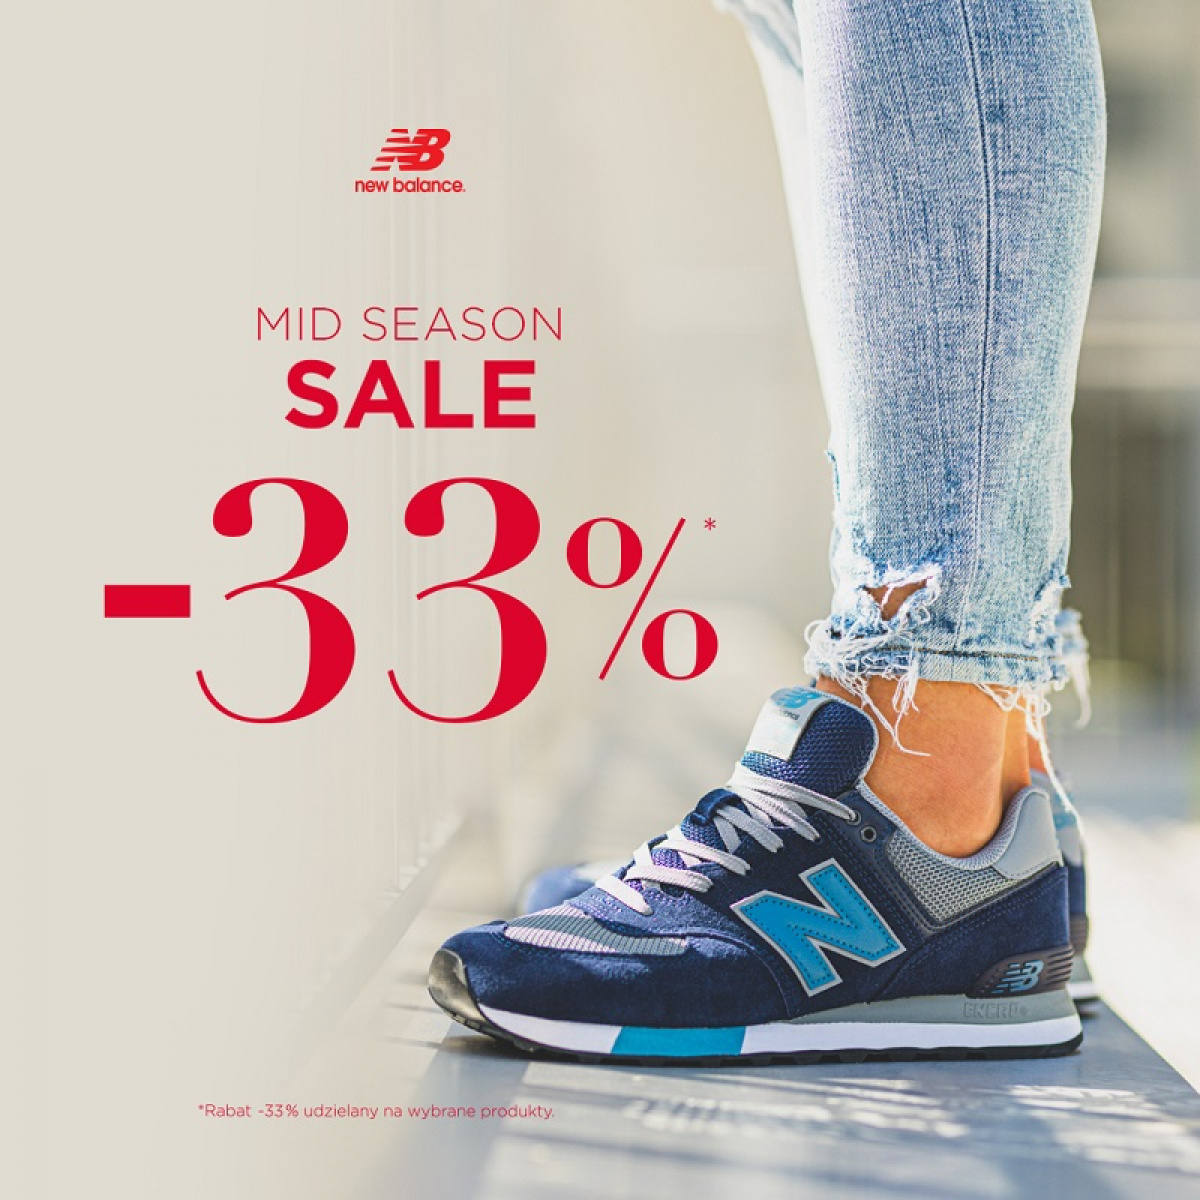 MID SEASON SALE W NEW BALANCE